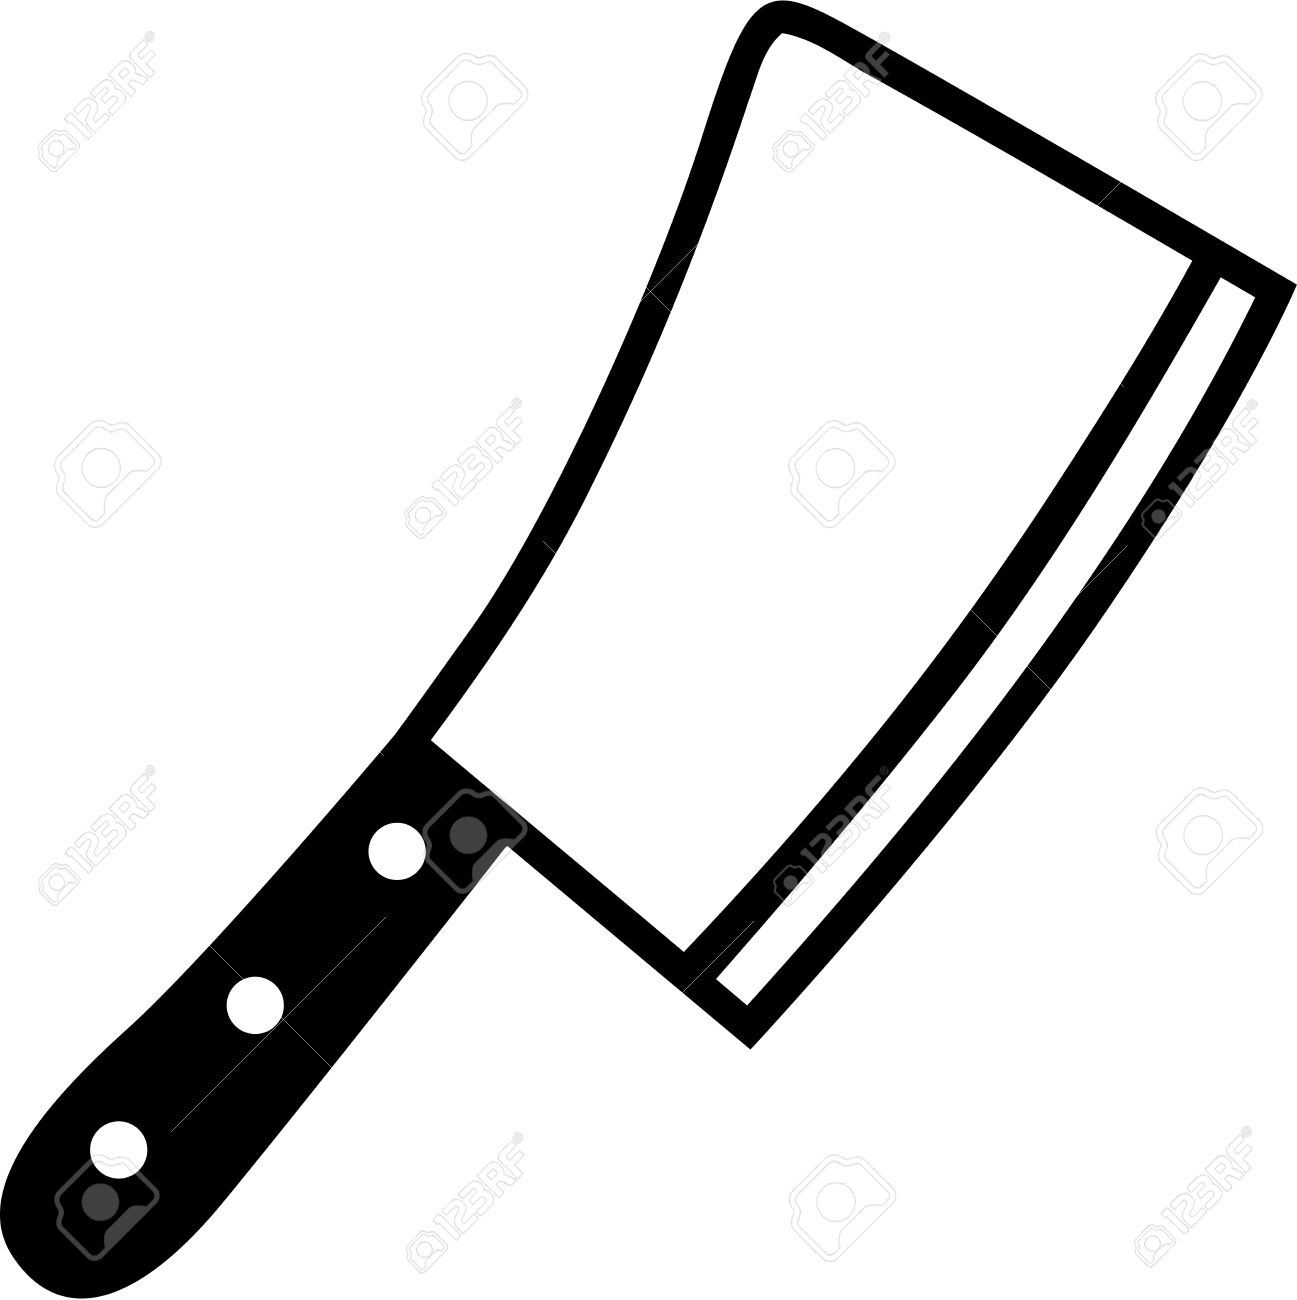 butcher knife cleaver royalty free cliparts vectors and stock rh 123rf com knife clip art black and white knife clipart black and white